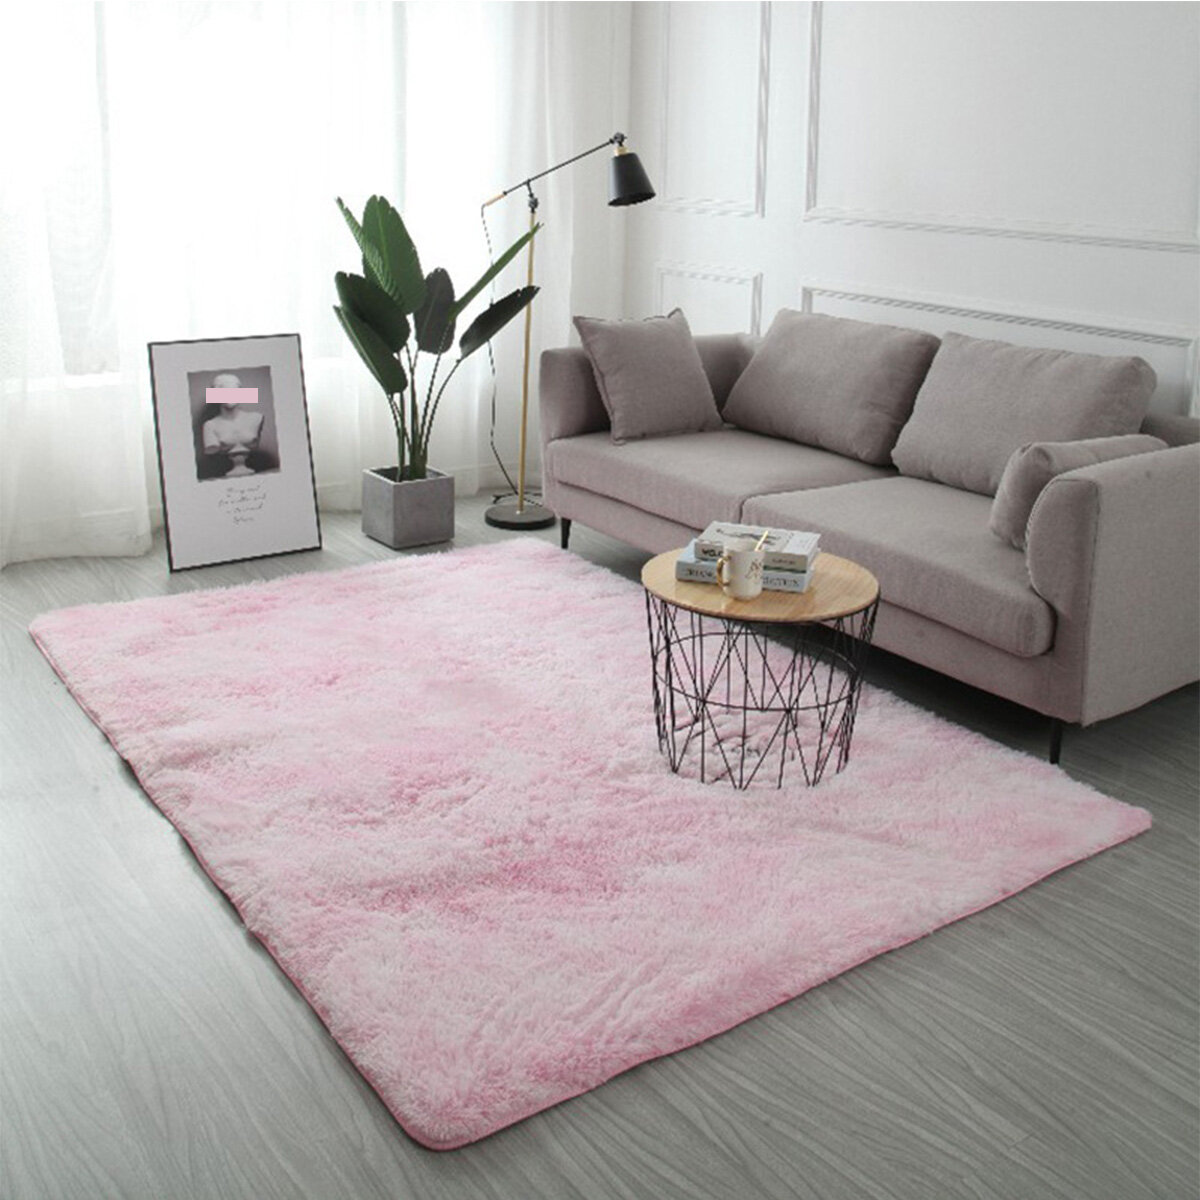 3 Size Pad Dyed Gradient Silk Wool Carpet Super Soft Rug Indoor Modern Shag Area Rug Silky Rugs Bedroom Floor Mat Baby Nursery Rug Children Carpet For